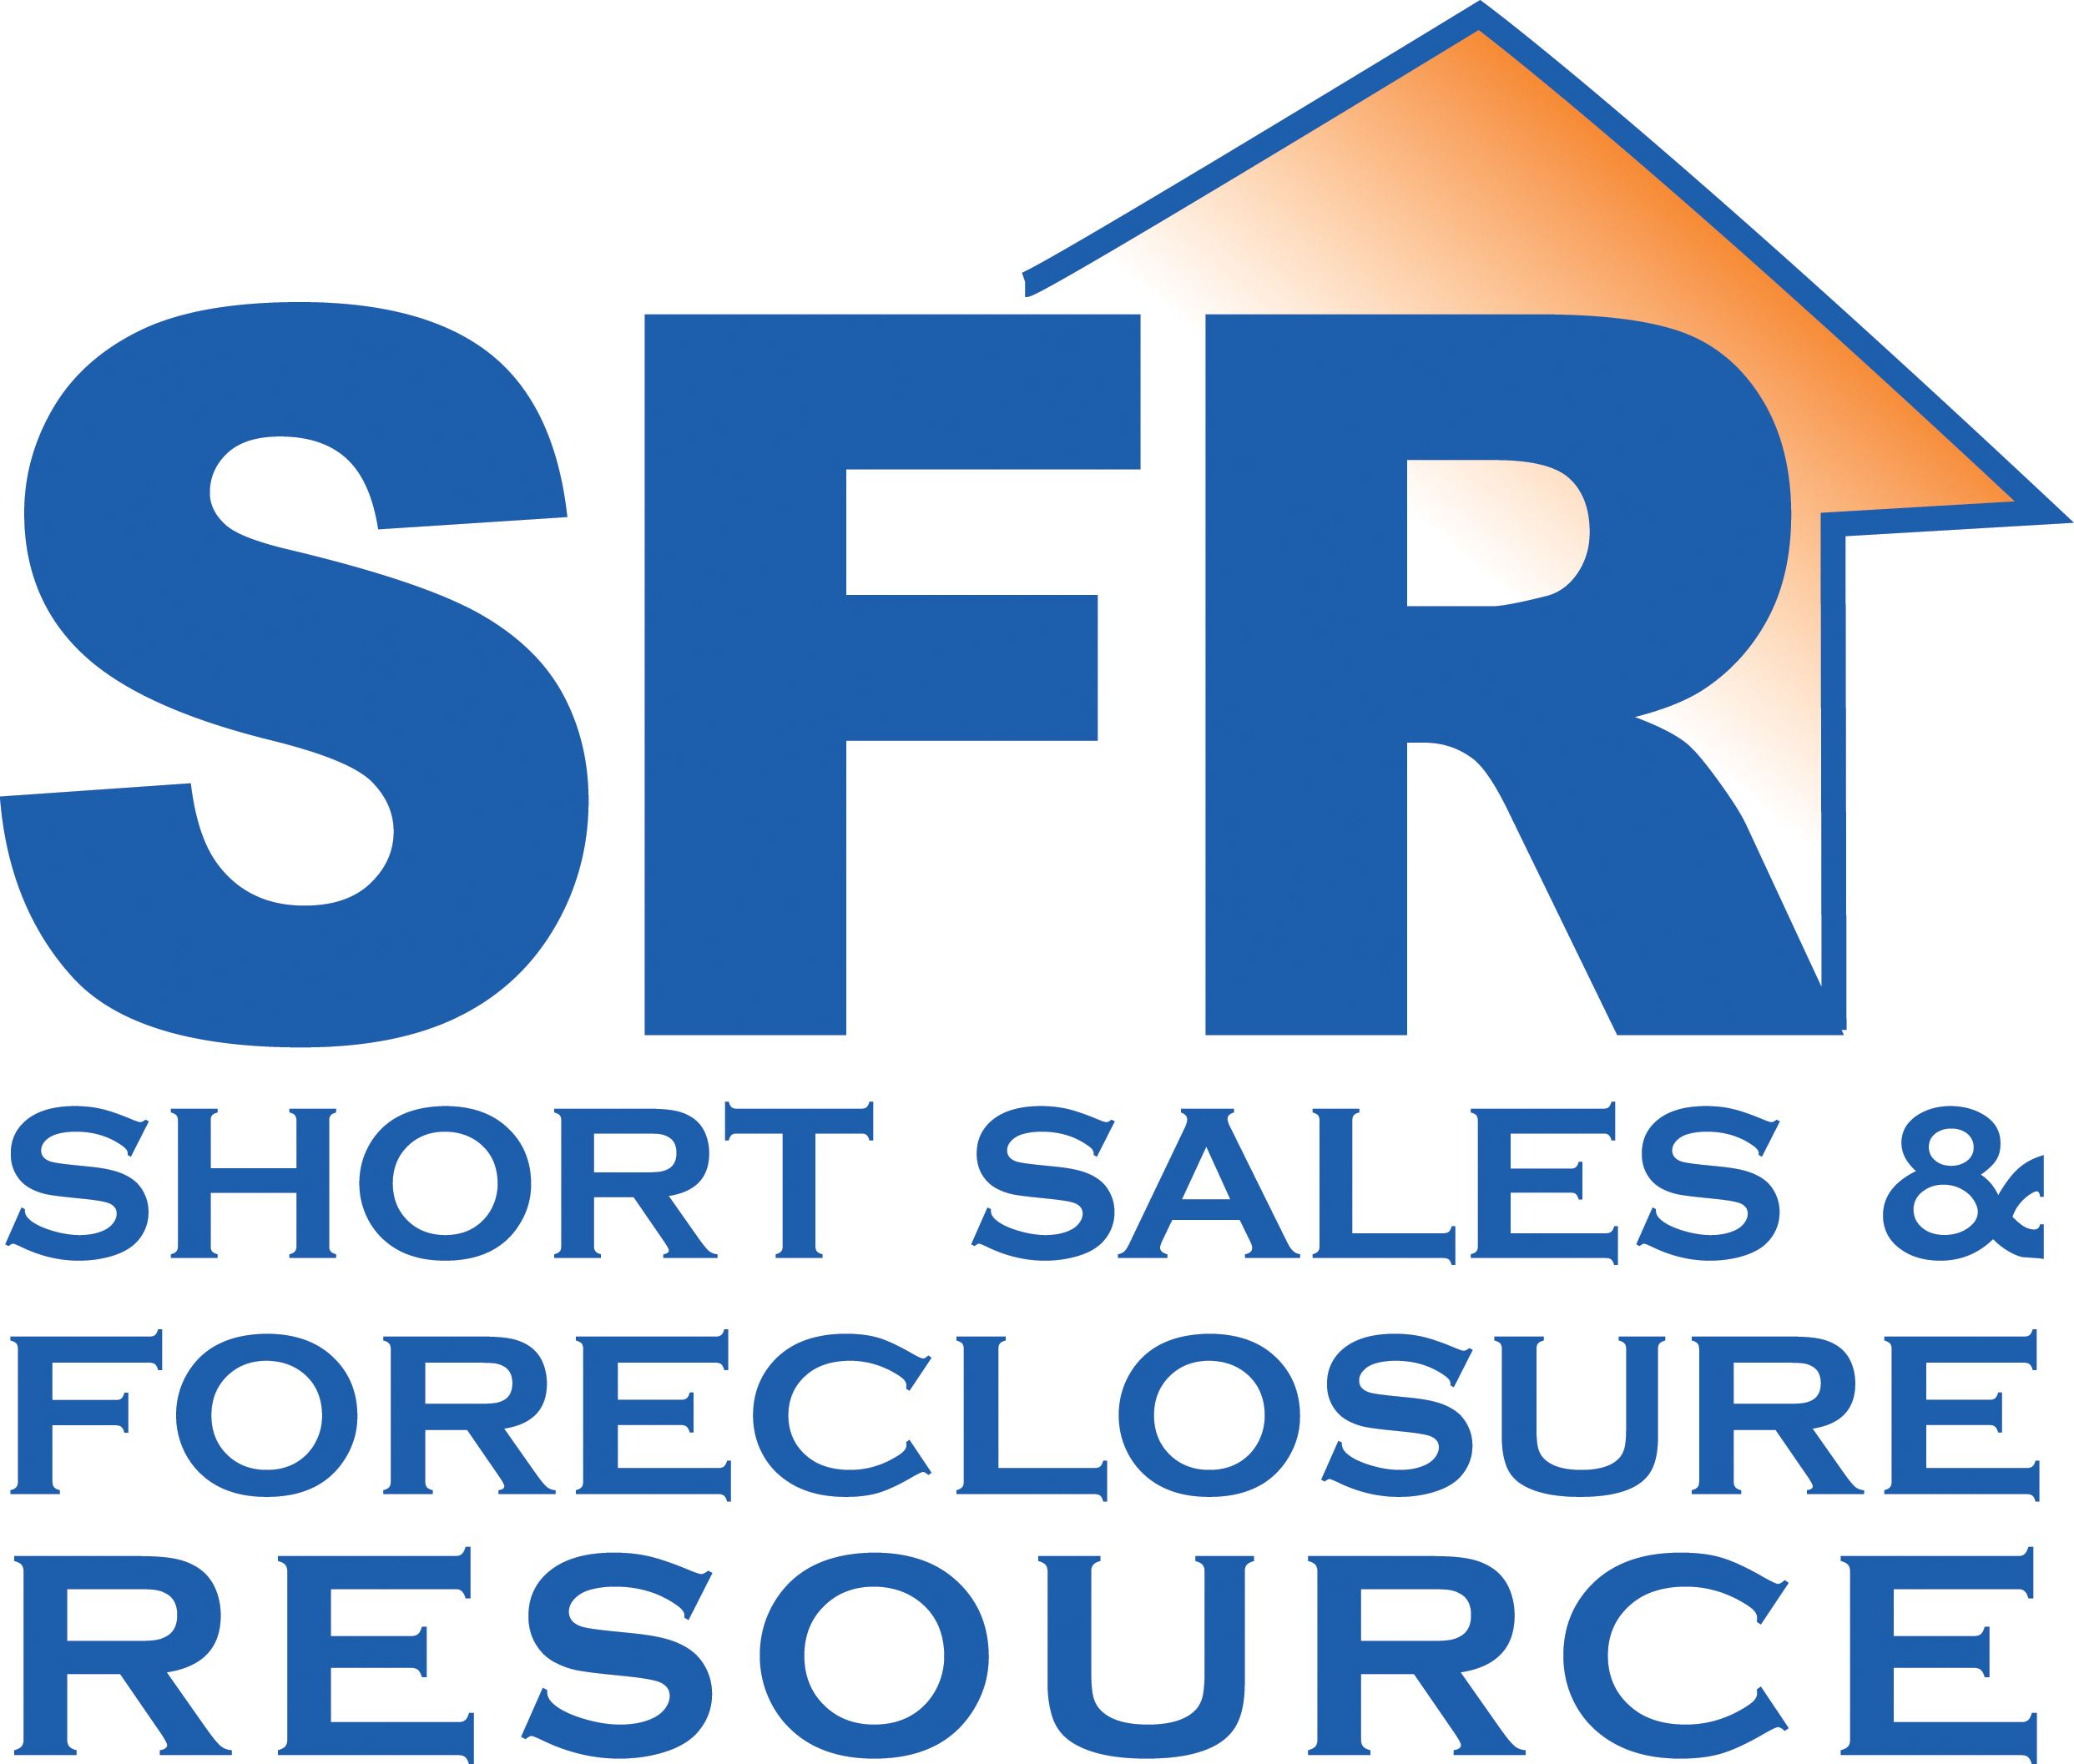 Foreclosures image by RMF Realty Team KW Realty on Short